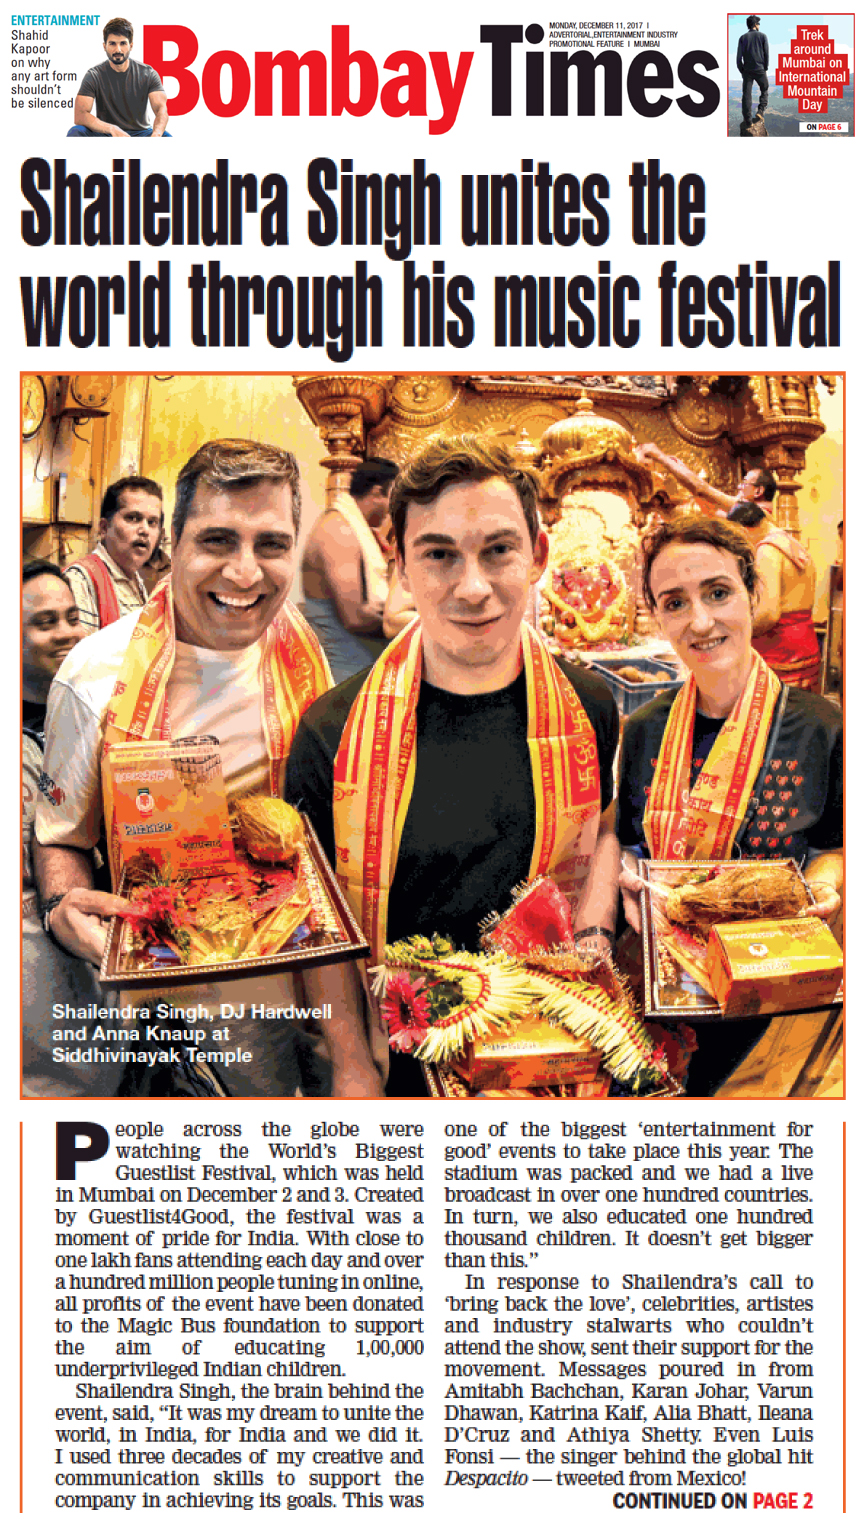 Times of India. 11 Dec 2017